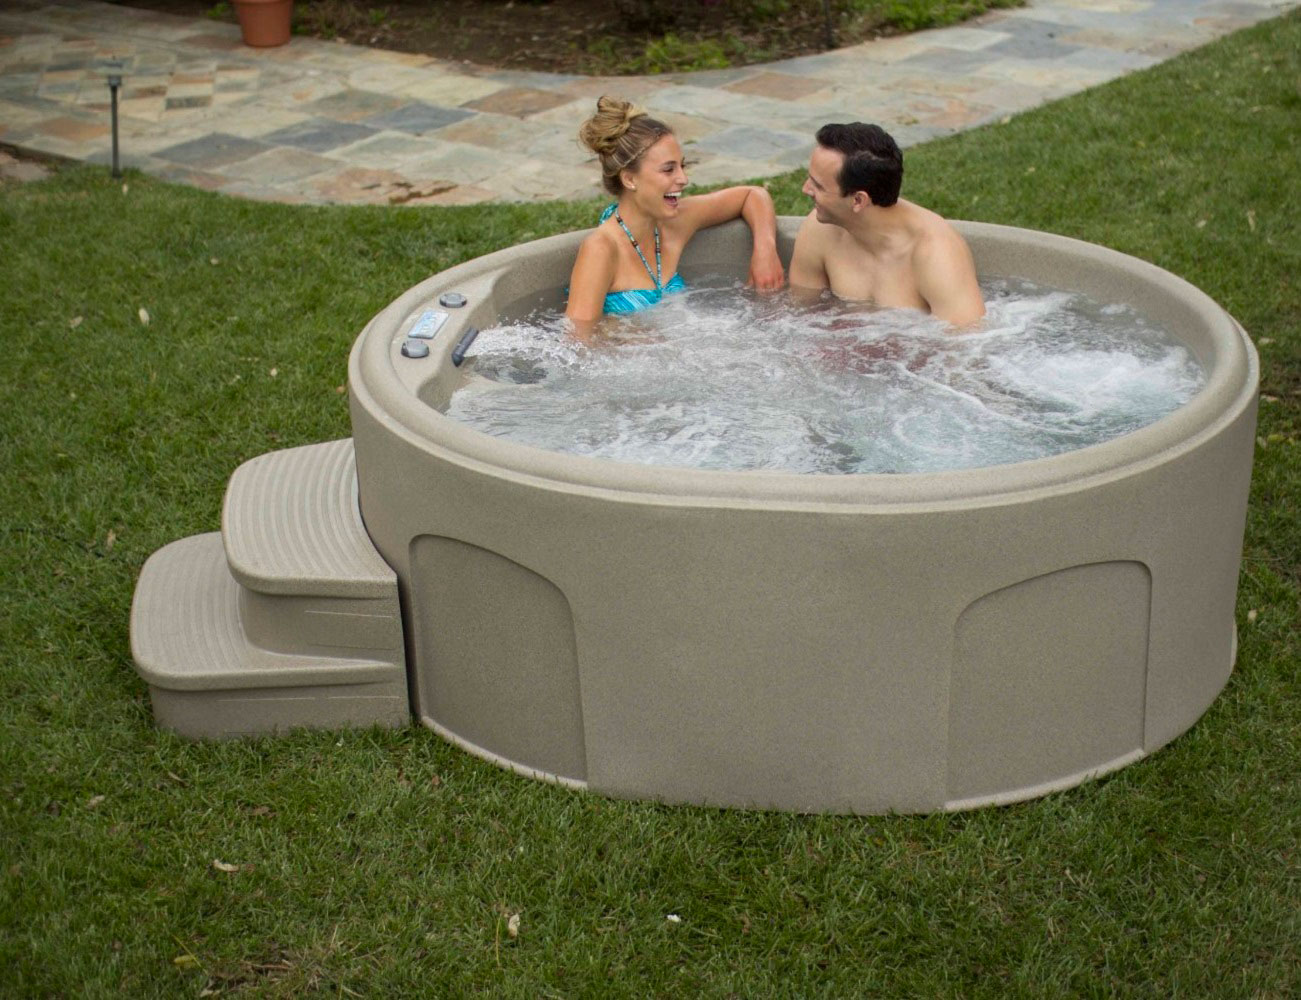 Luna Rock Solid Series Spa by Lifesmart